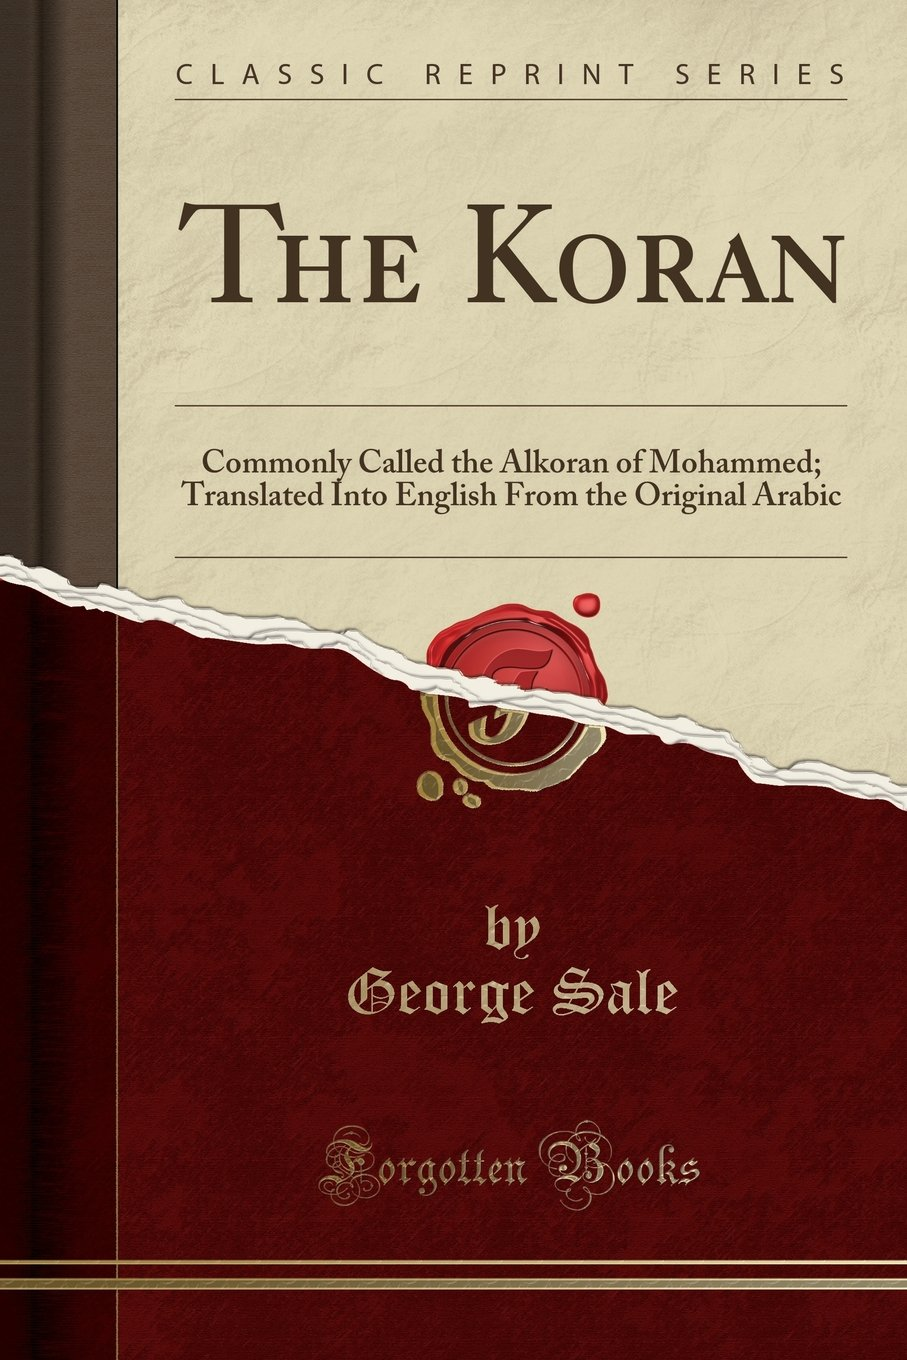 The Koran: Commonly Called the Alkoran of Mohammed; Translated Into English From the Original Arabic (Classic Reprint) ebook